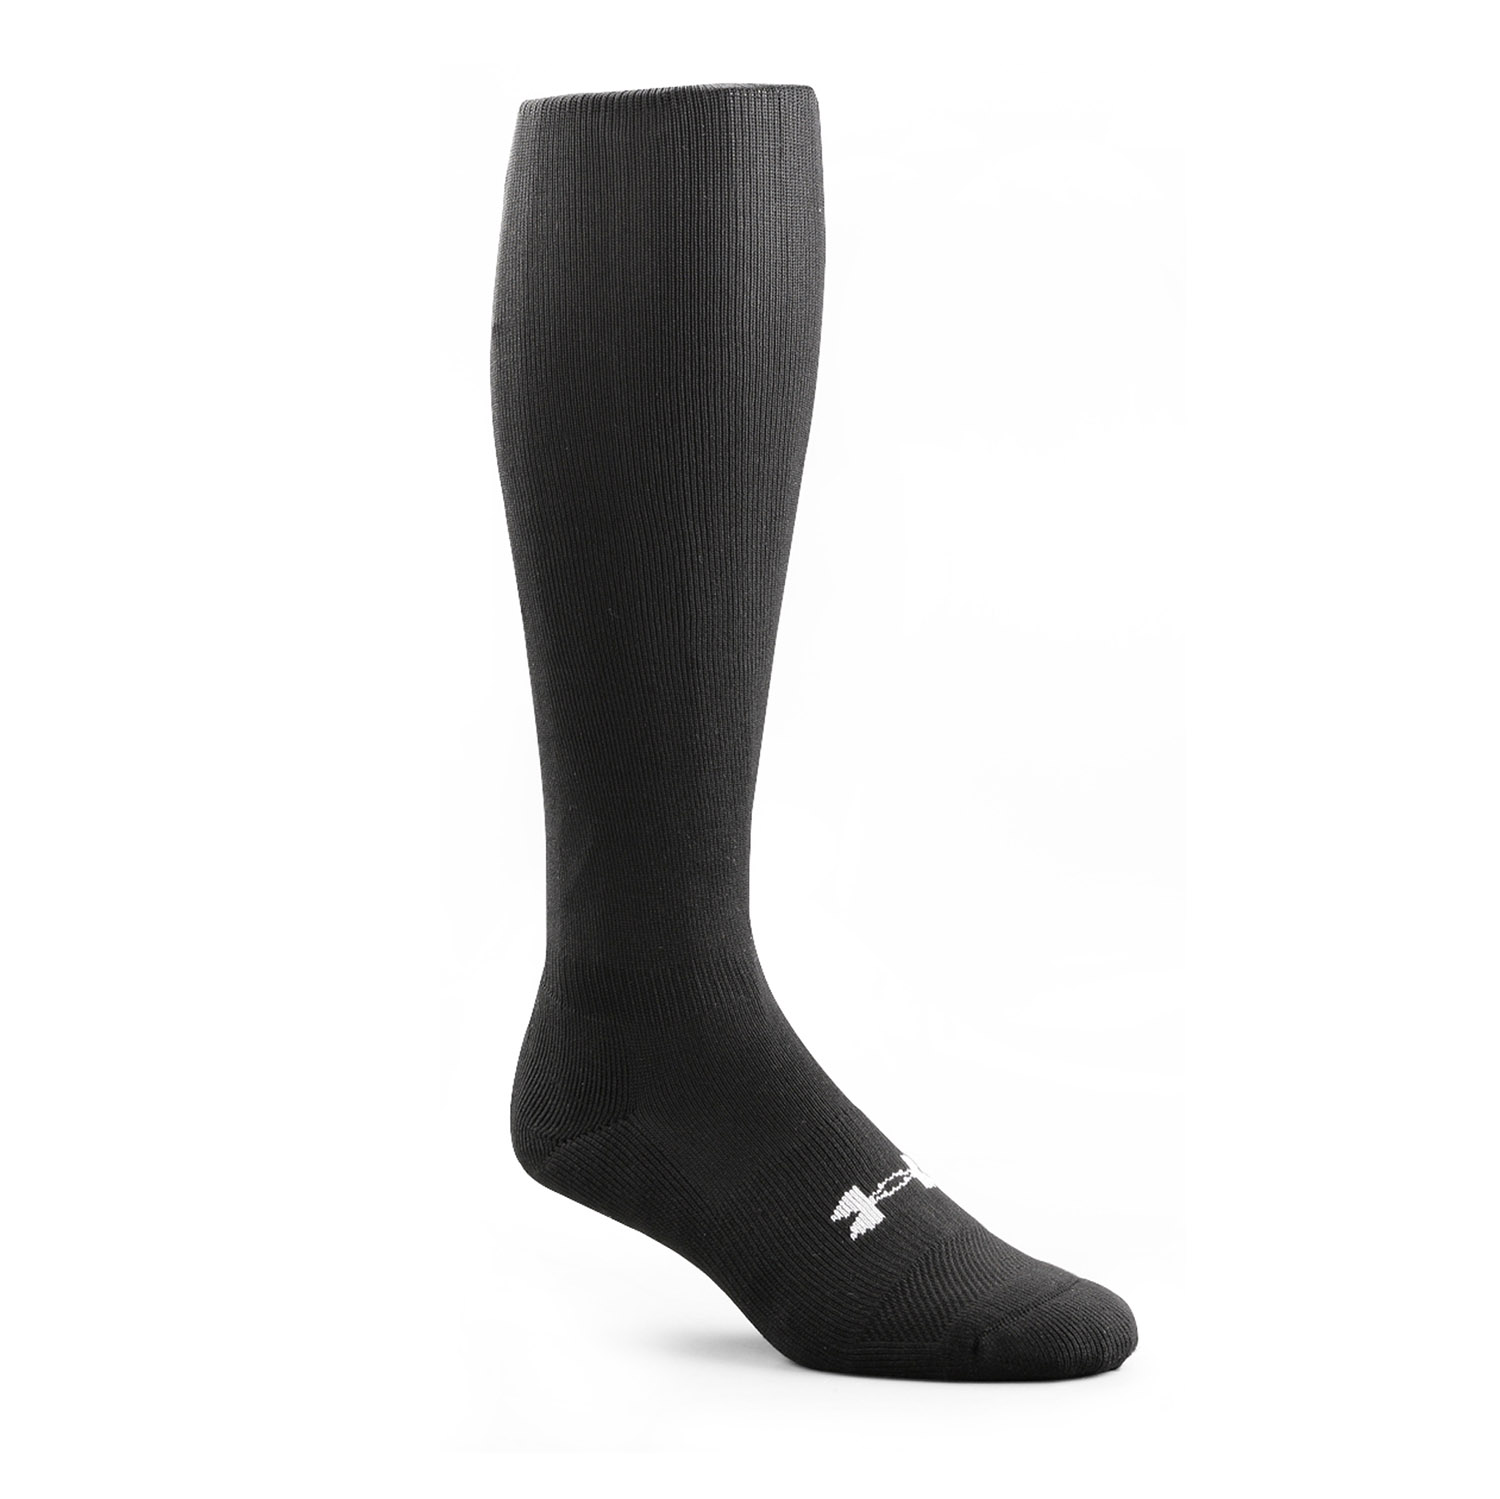 Under Armour Men's HeatGear Tactical Boot Socks